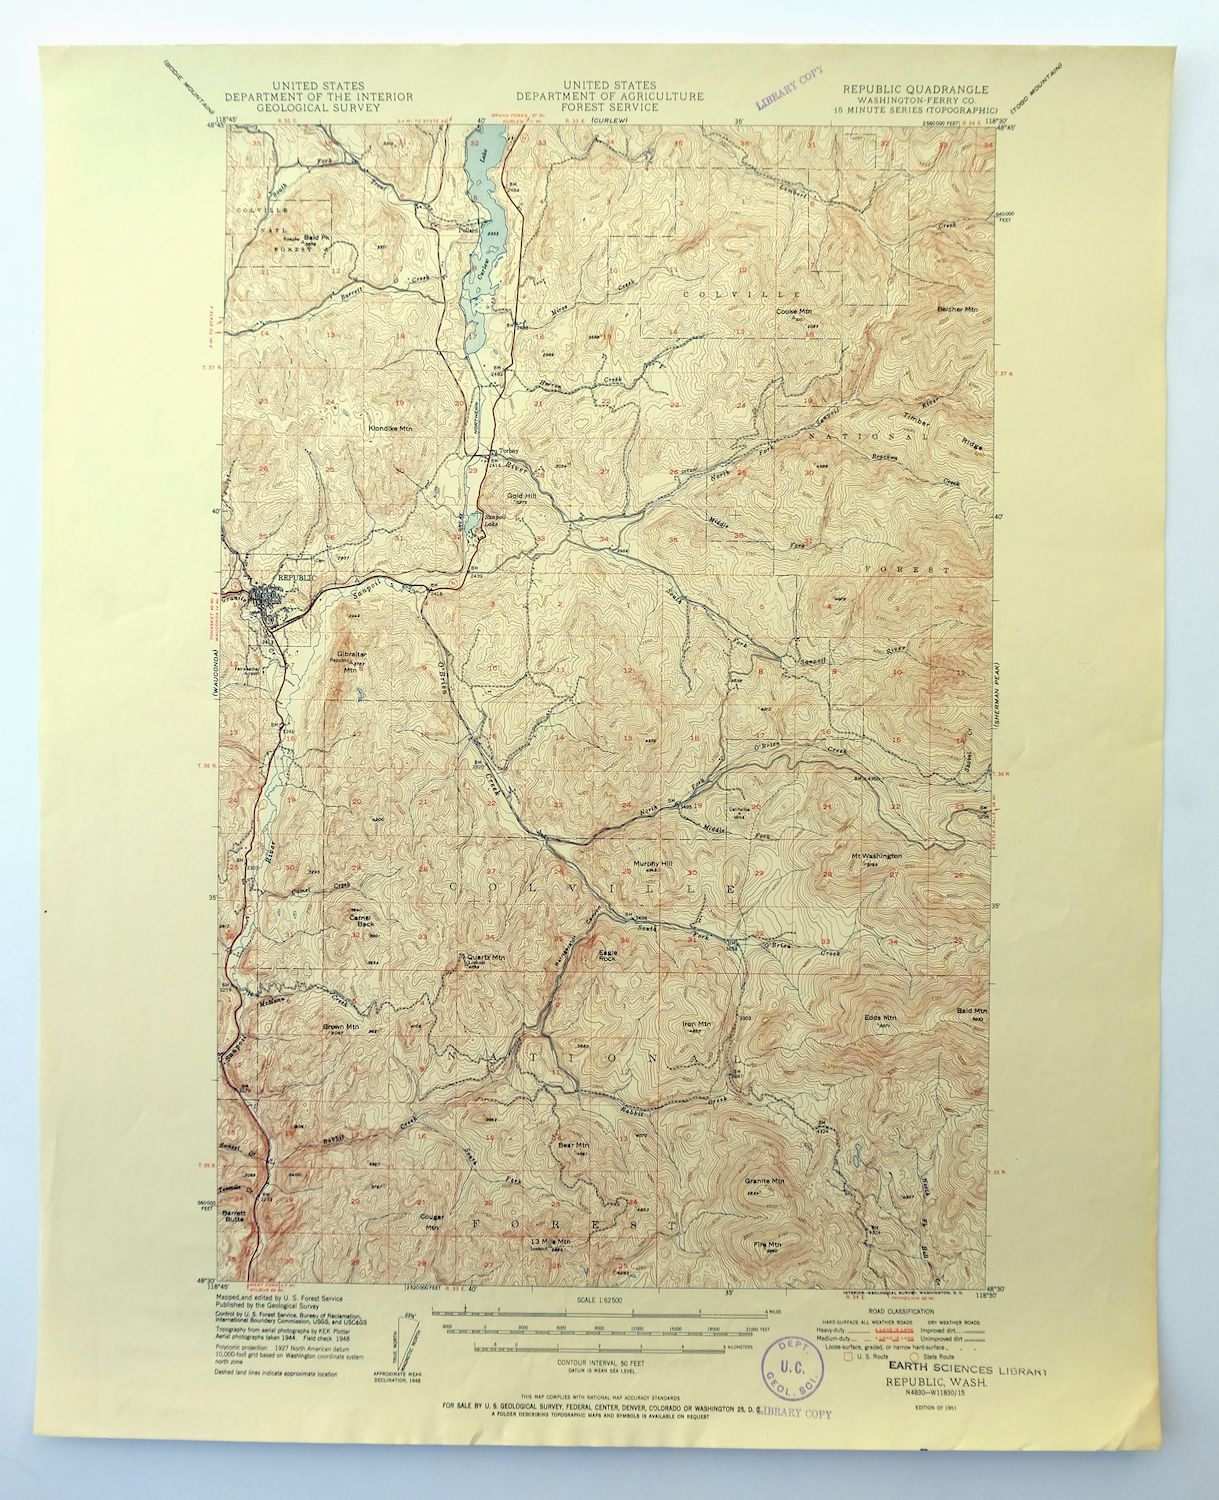 Topographic Map Usgs.Republic Washington Vintage 1951 Usgs Topo Map Curlew Lake